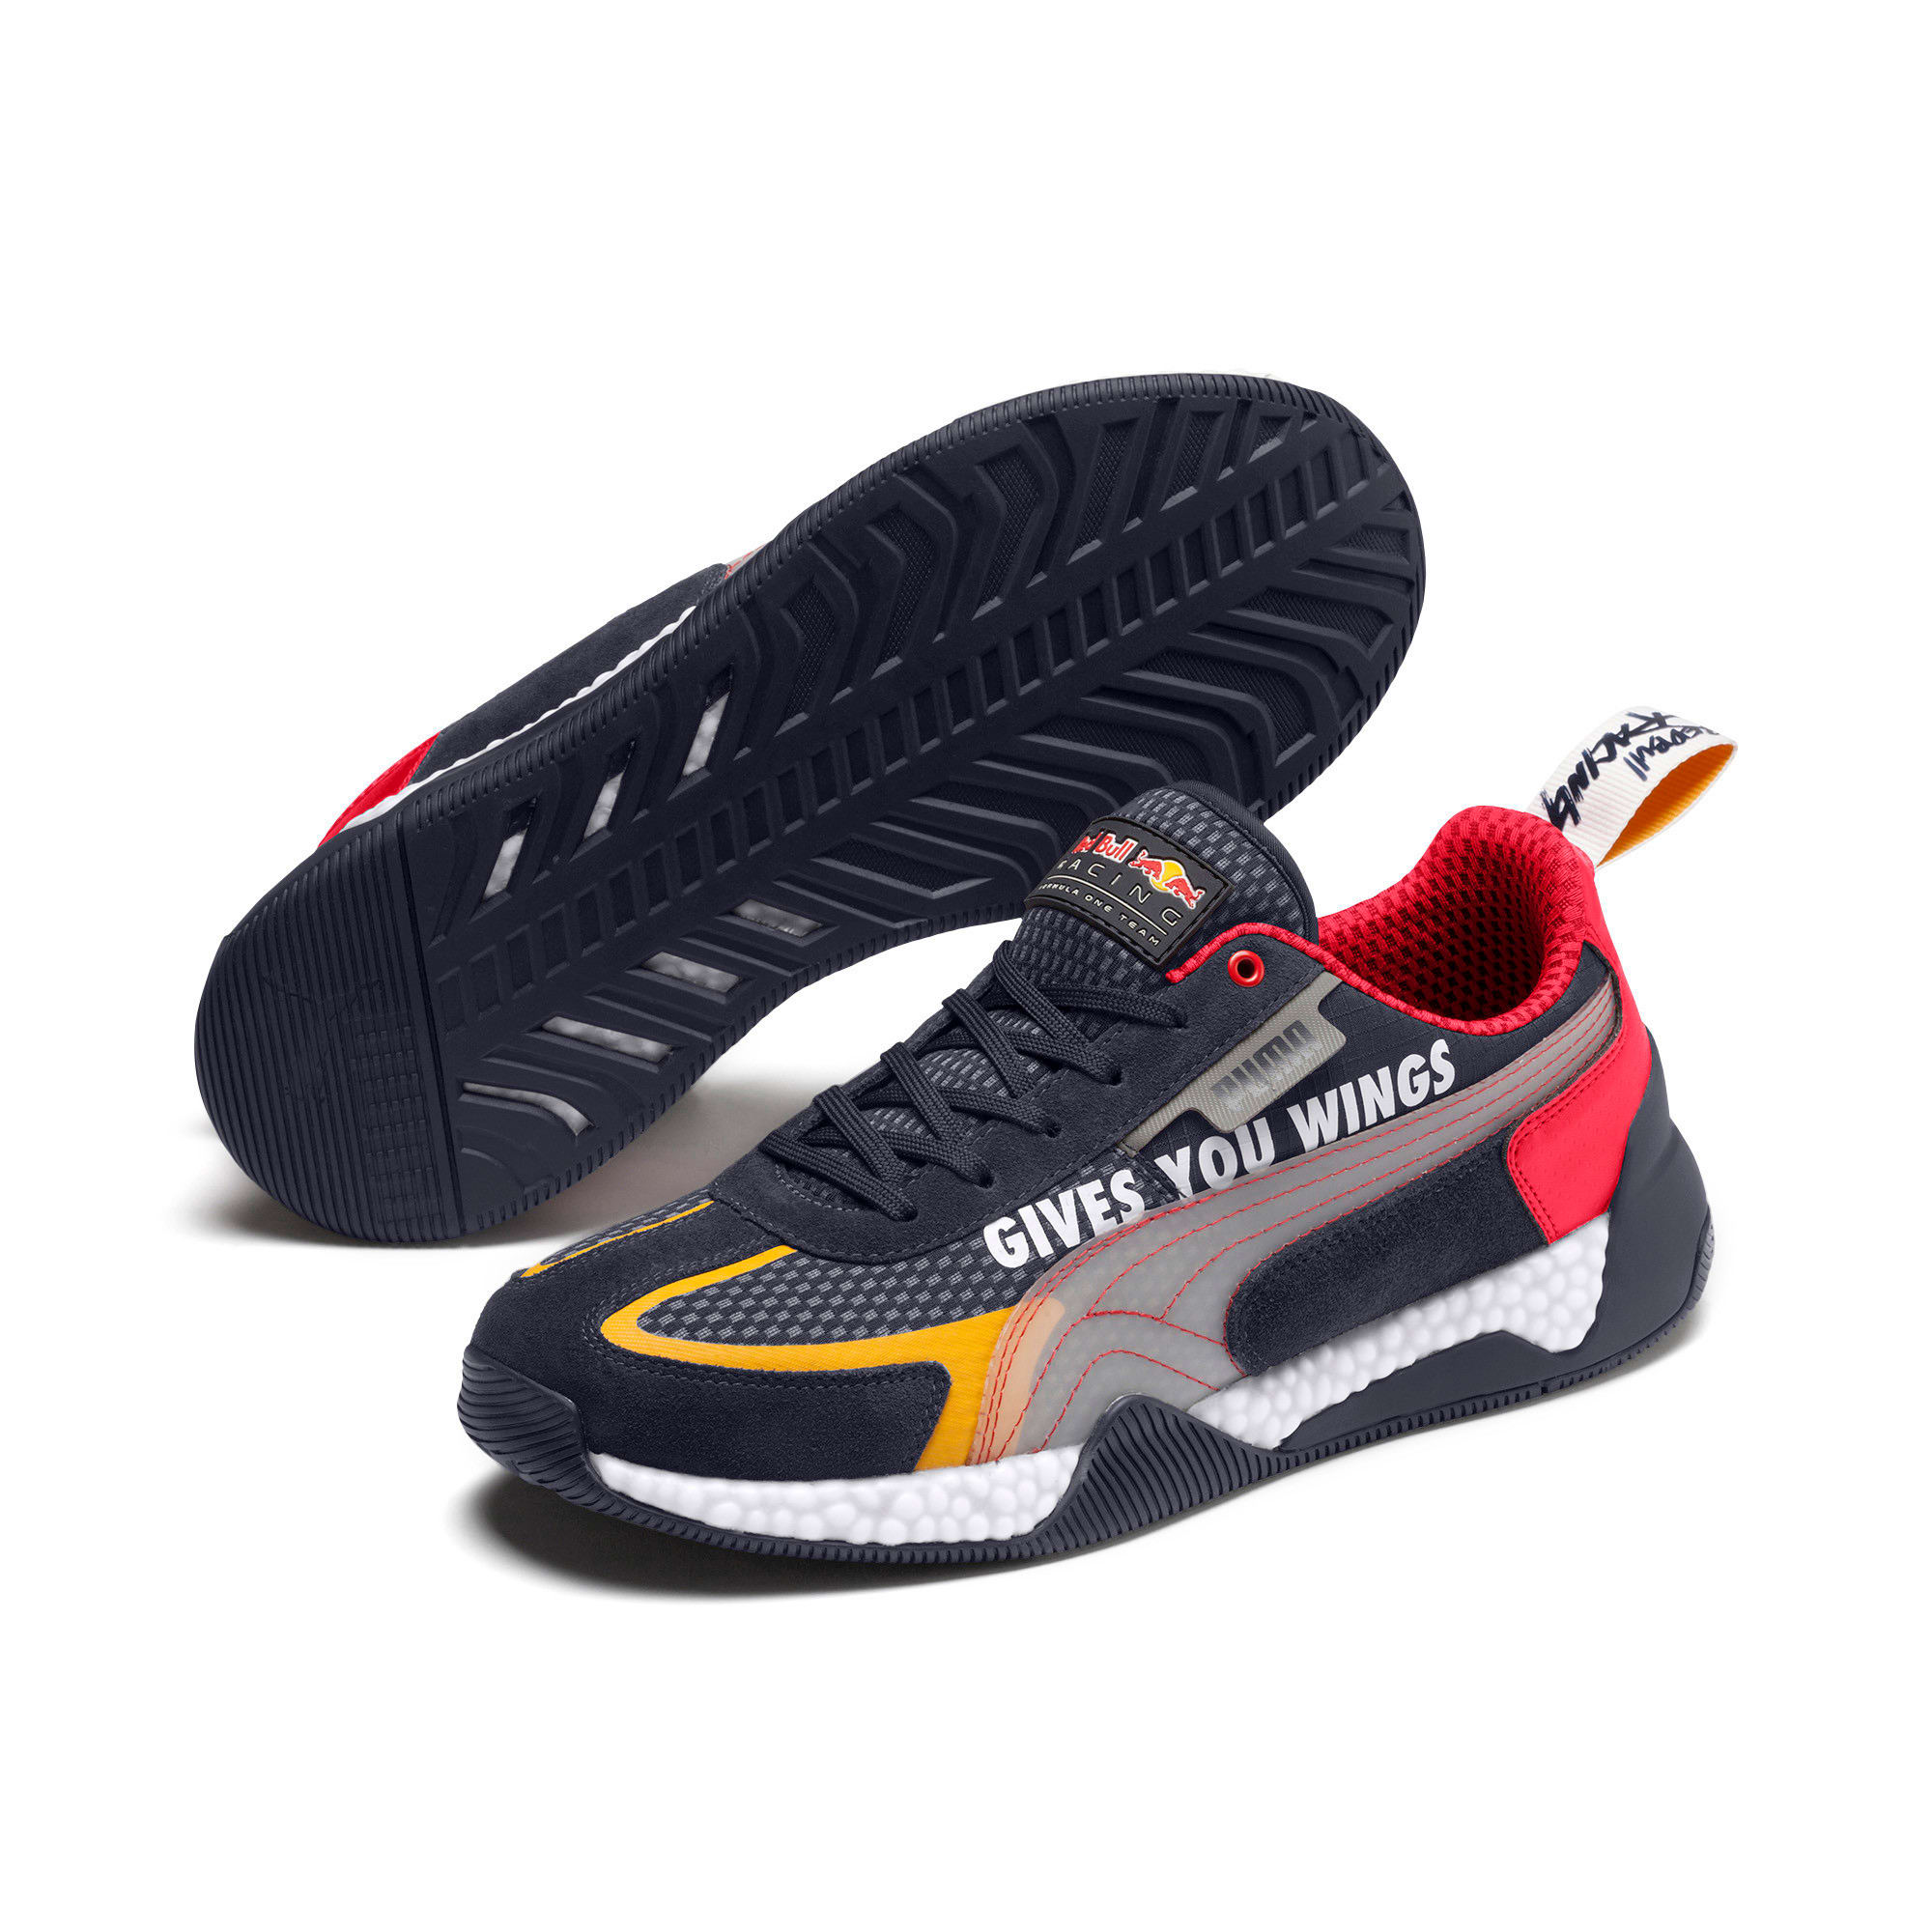 Thumbnail 3 of Red Bull Racing Speed HYBRID Running Shoes, NIGHT SKY-White-Chinese Red, medium